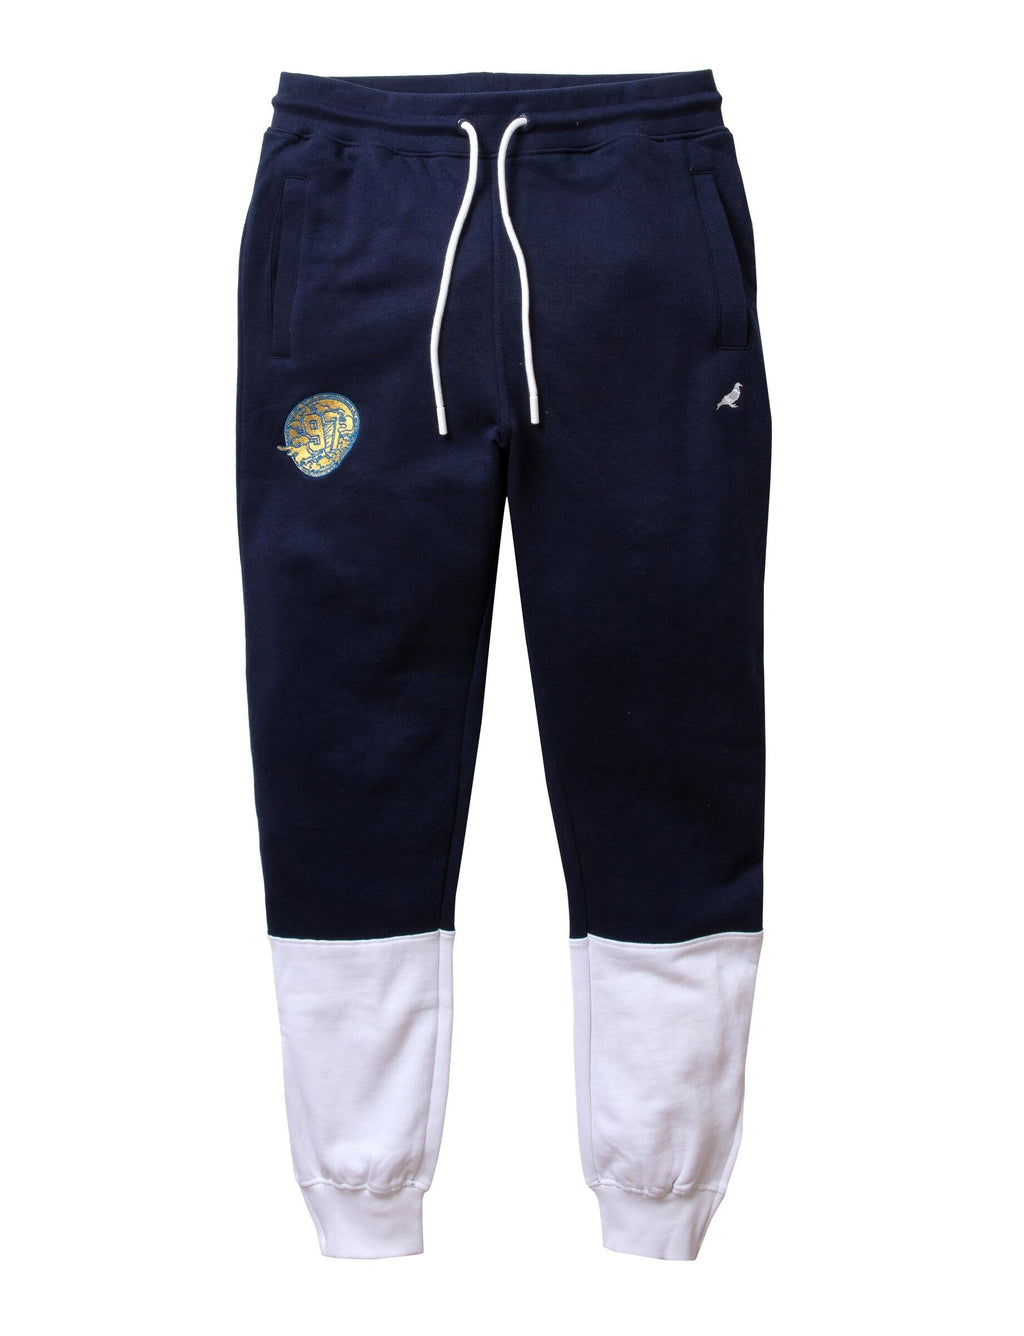 Gold Medal Sweatpant - Pants | Staple Pigeon